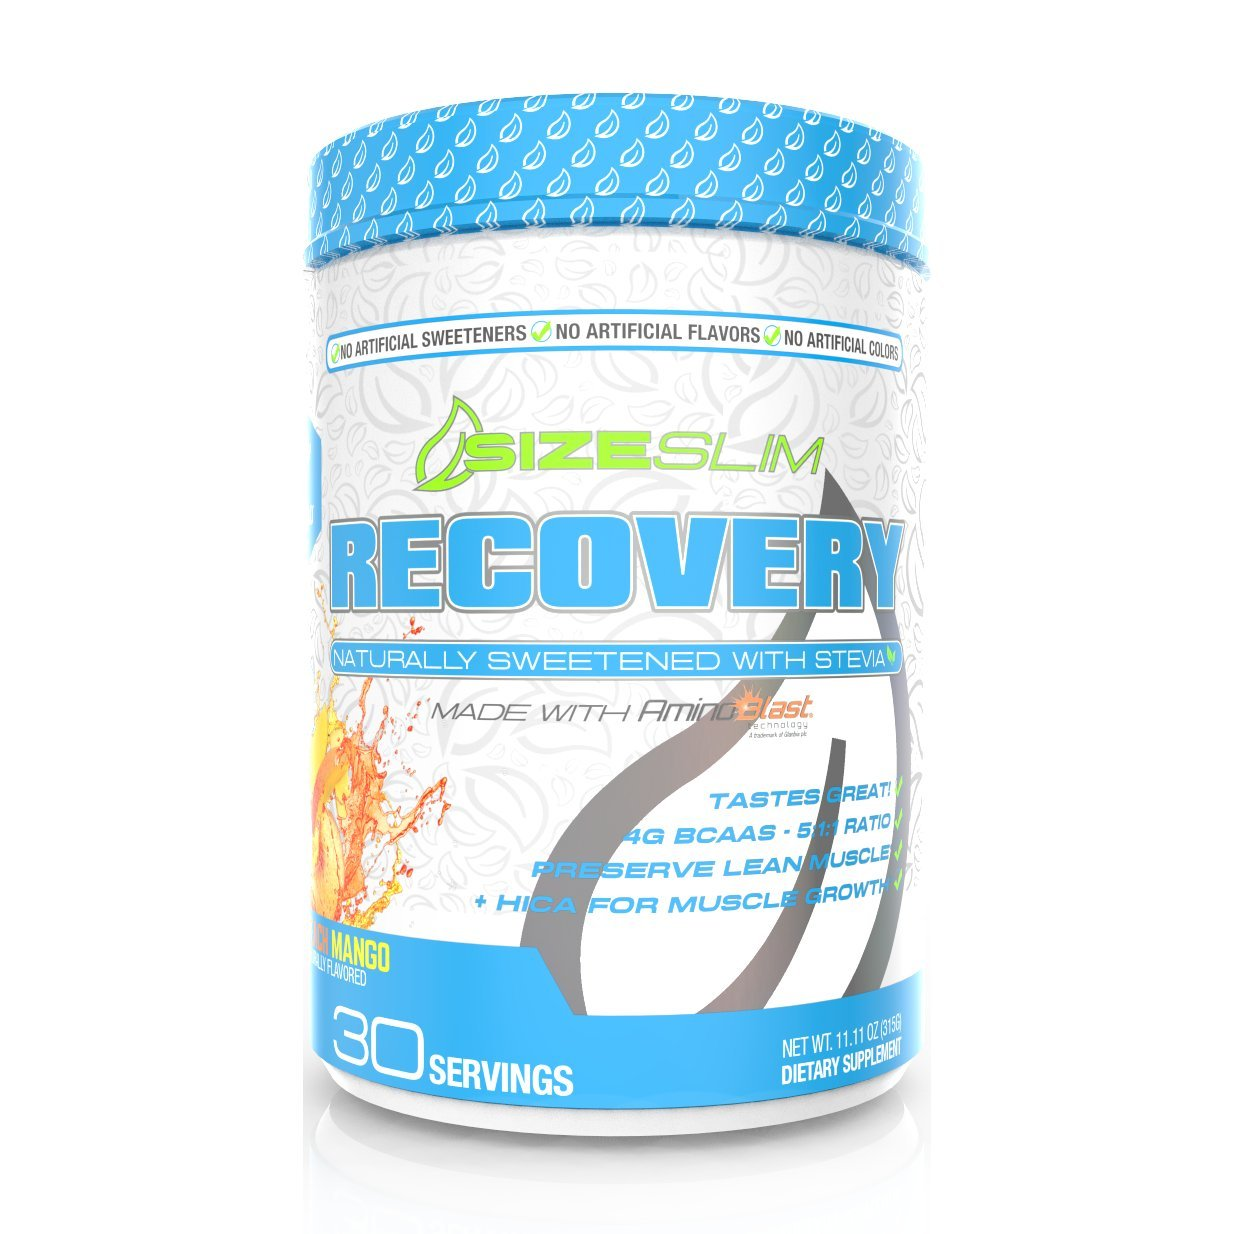 SizeSlim Stevia Recovery Peach Mango-Diabetic Friendly, Naturally Flavored & Sweetened, 4G of BCAAs in a Powerful 5:1:1 Ratio with Electrolytes, Reduce Soreness & Decrease Recovery Time-30 Servings